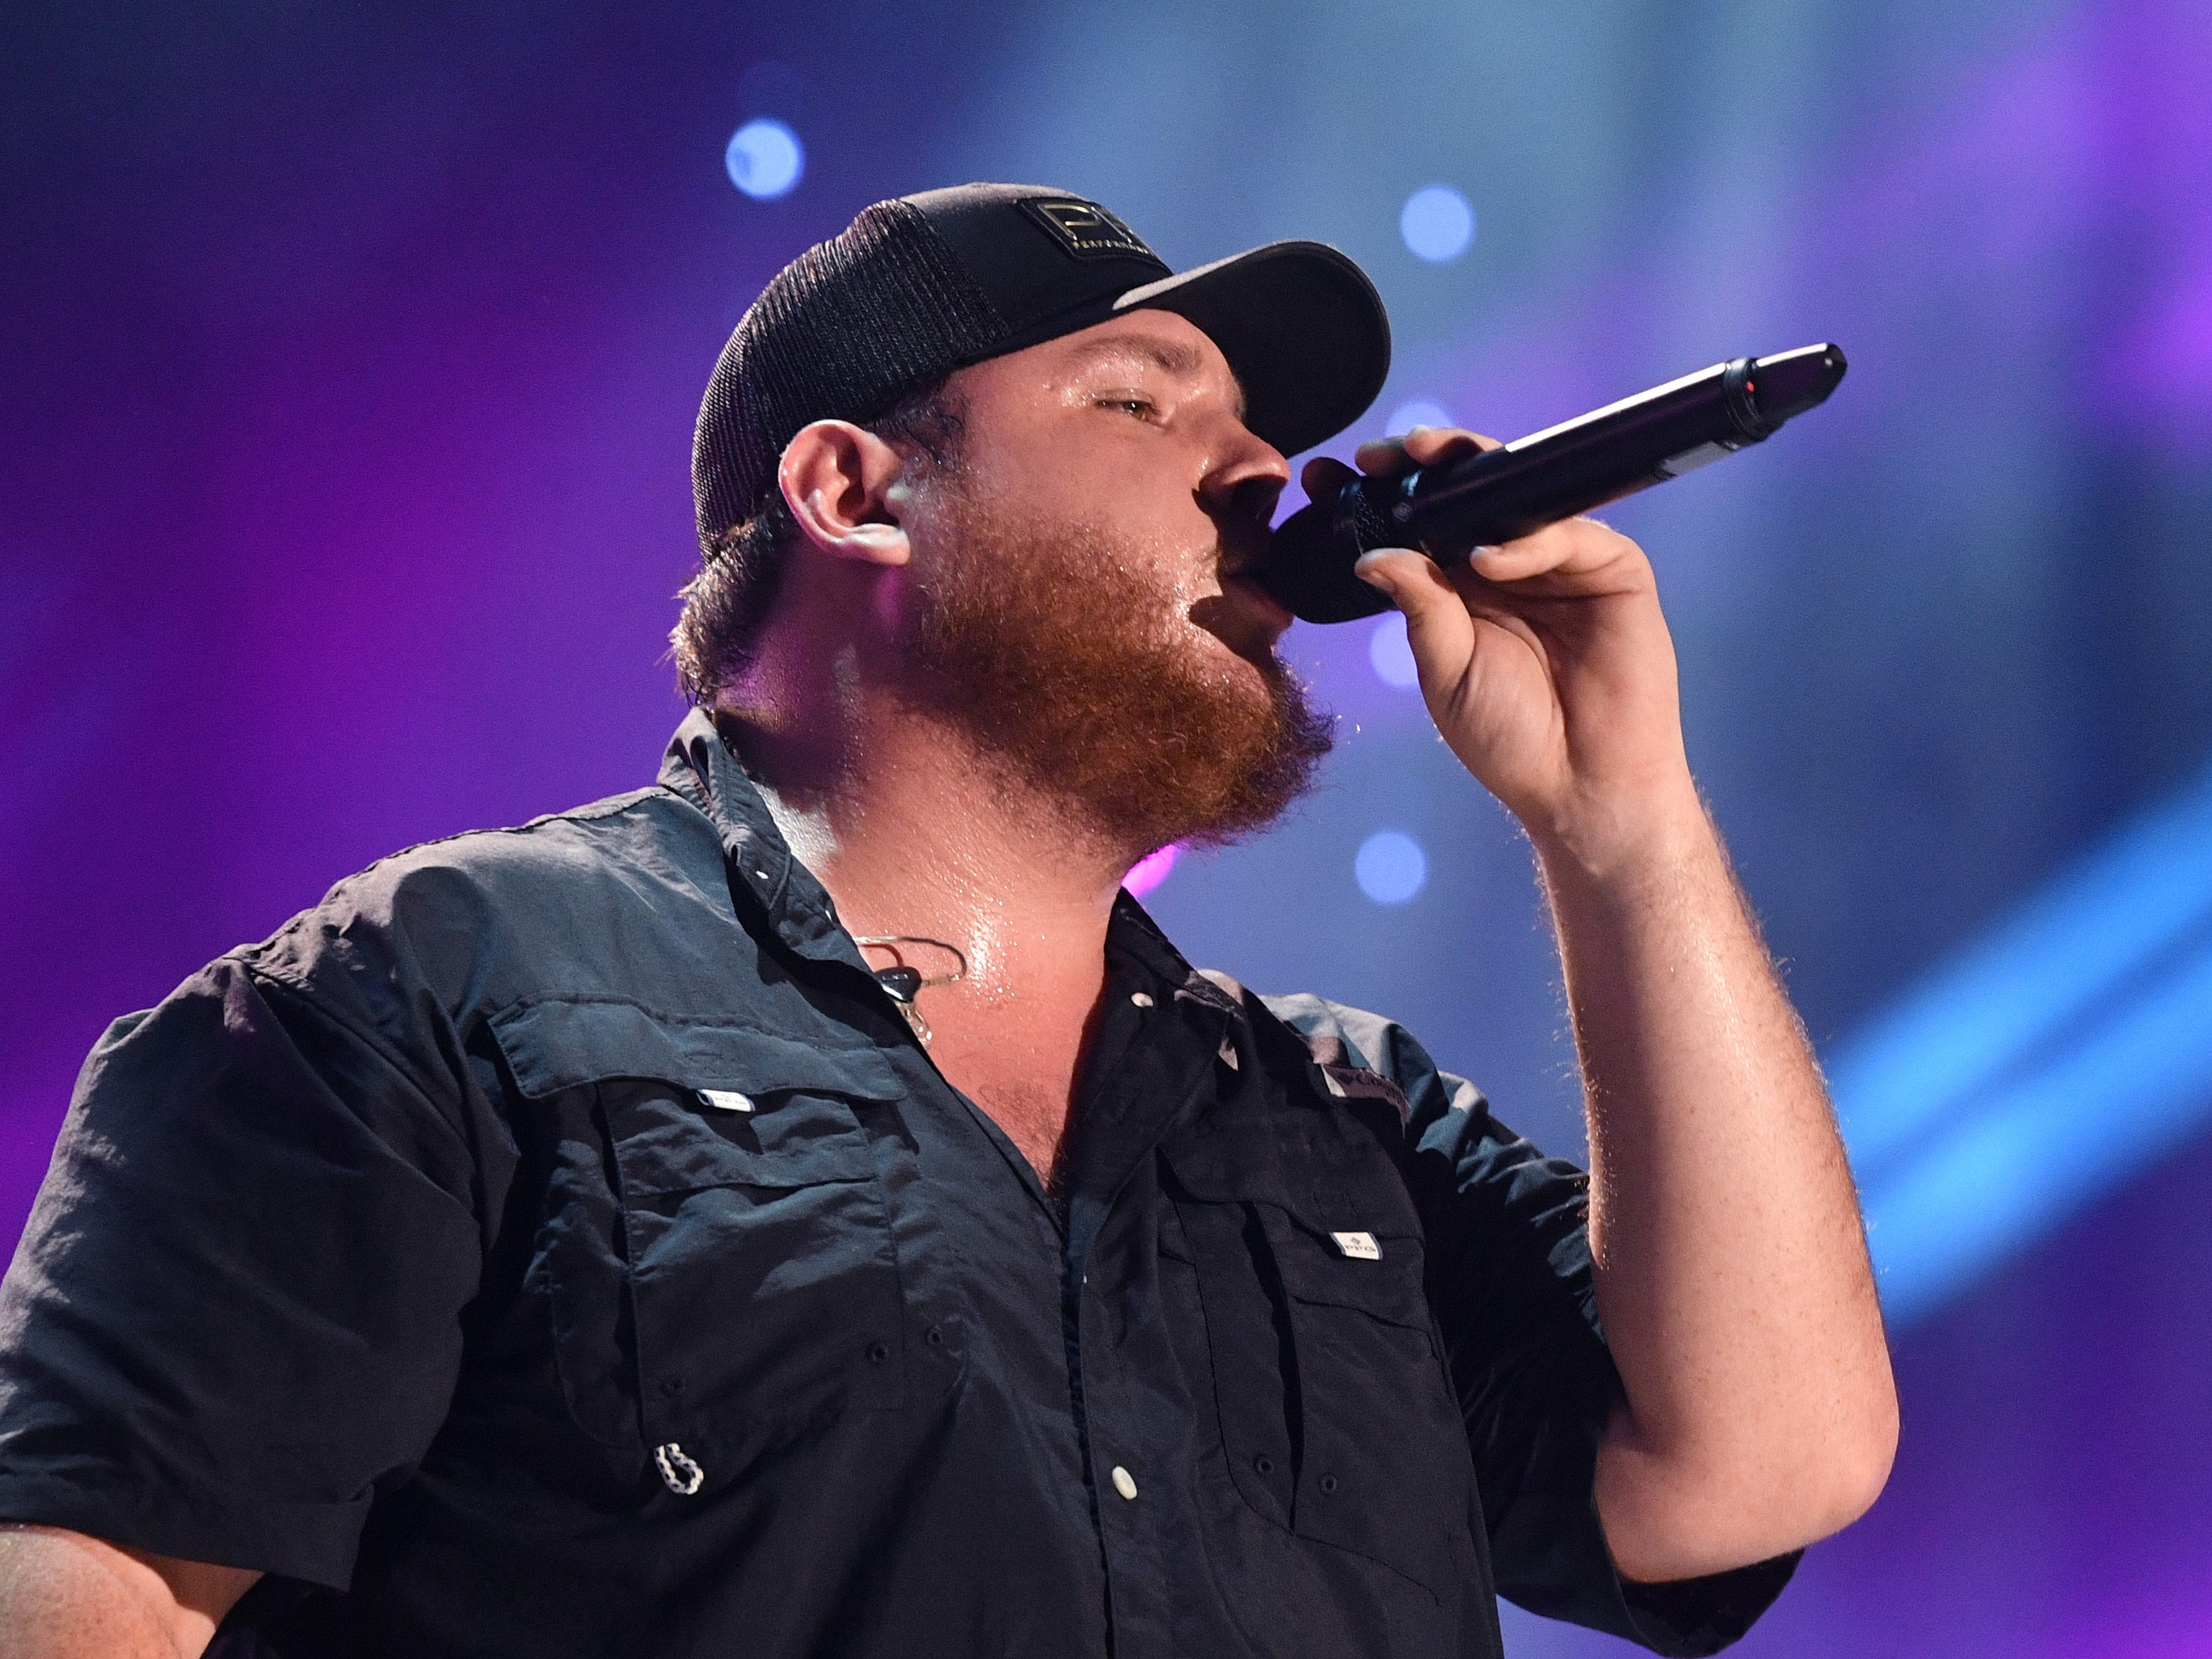 Luke Combs is scheduled to play Nissan Stadium during CMA Fest 2019.